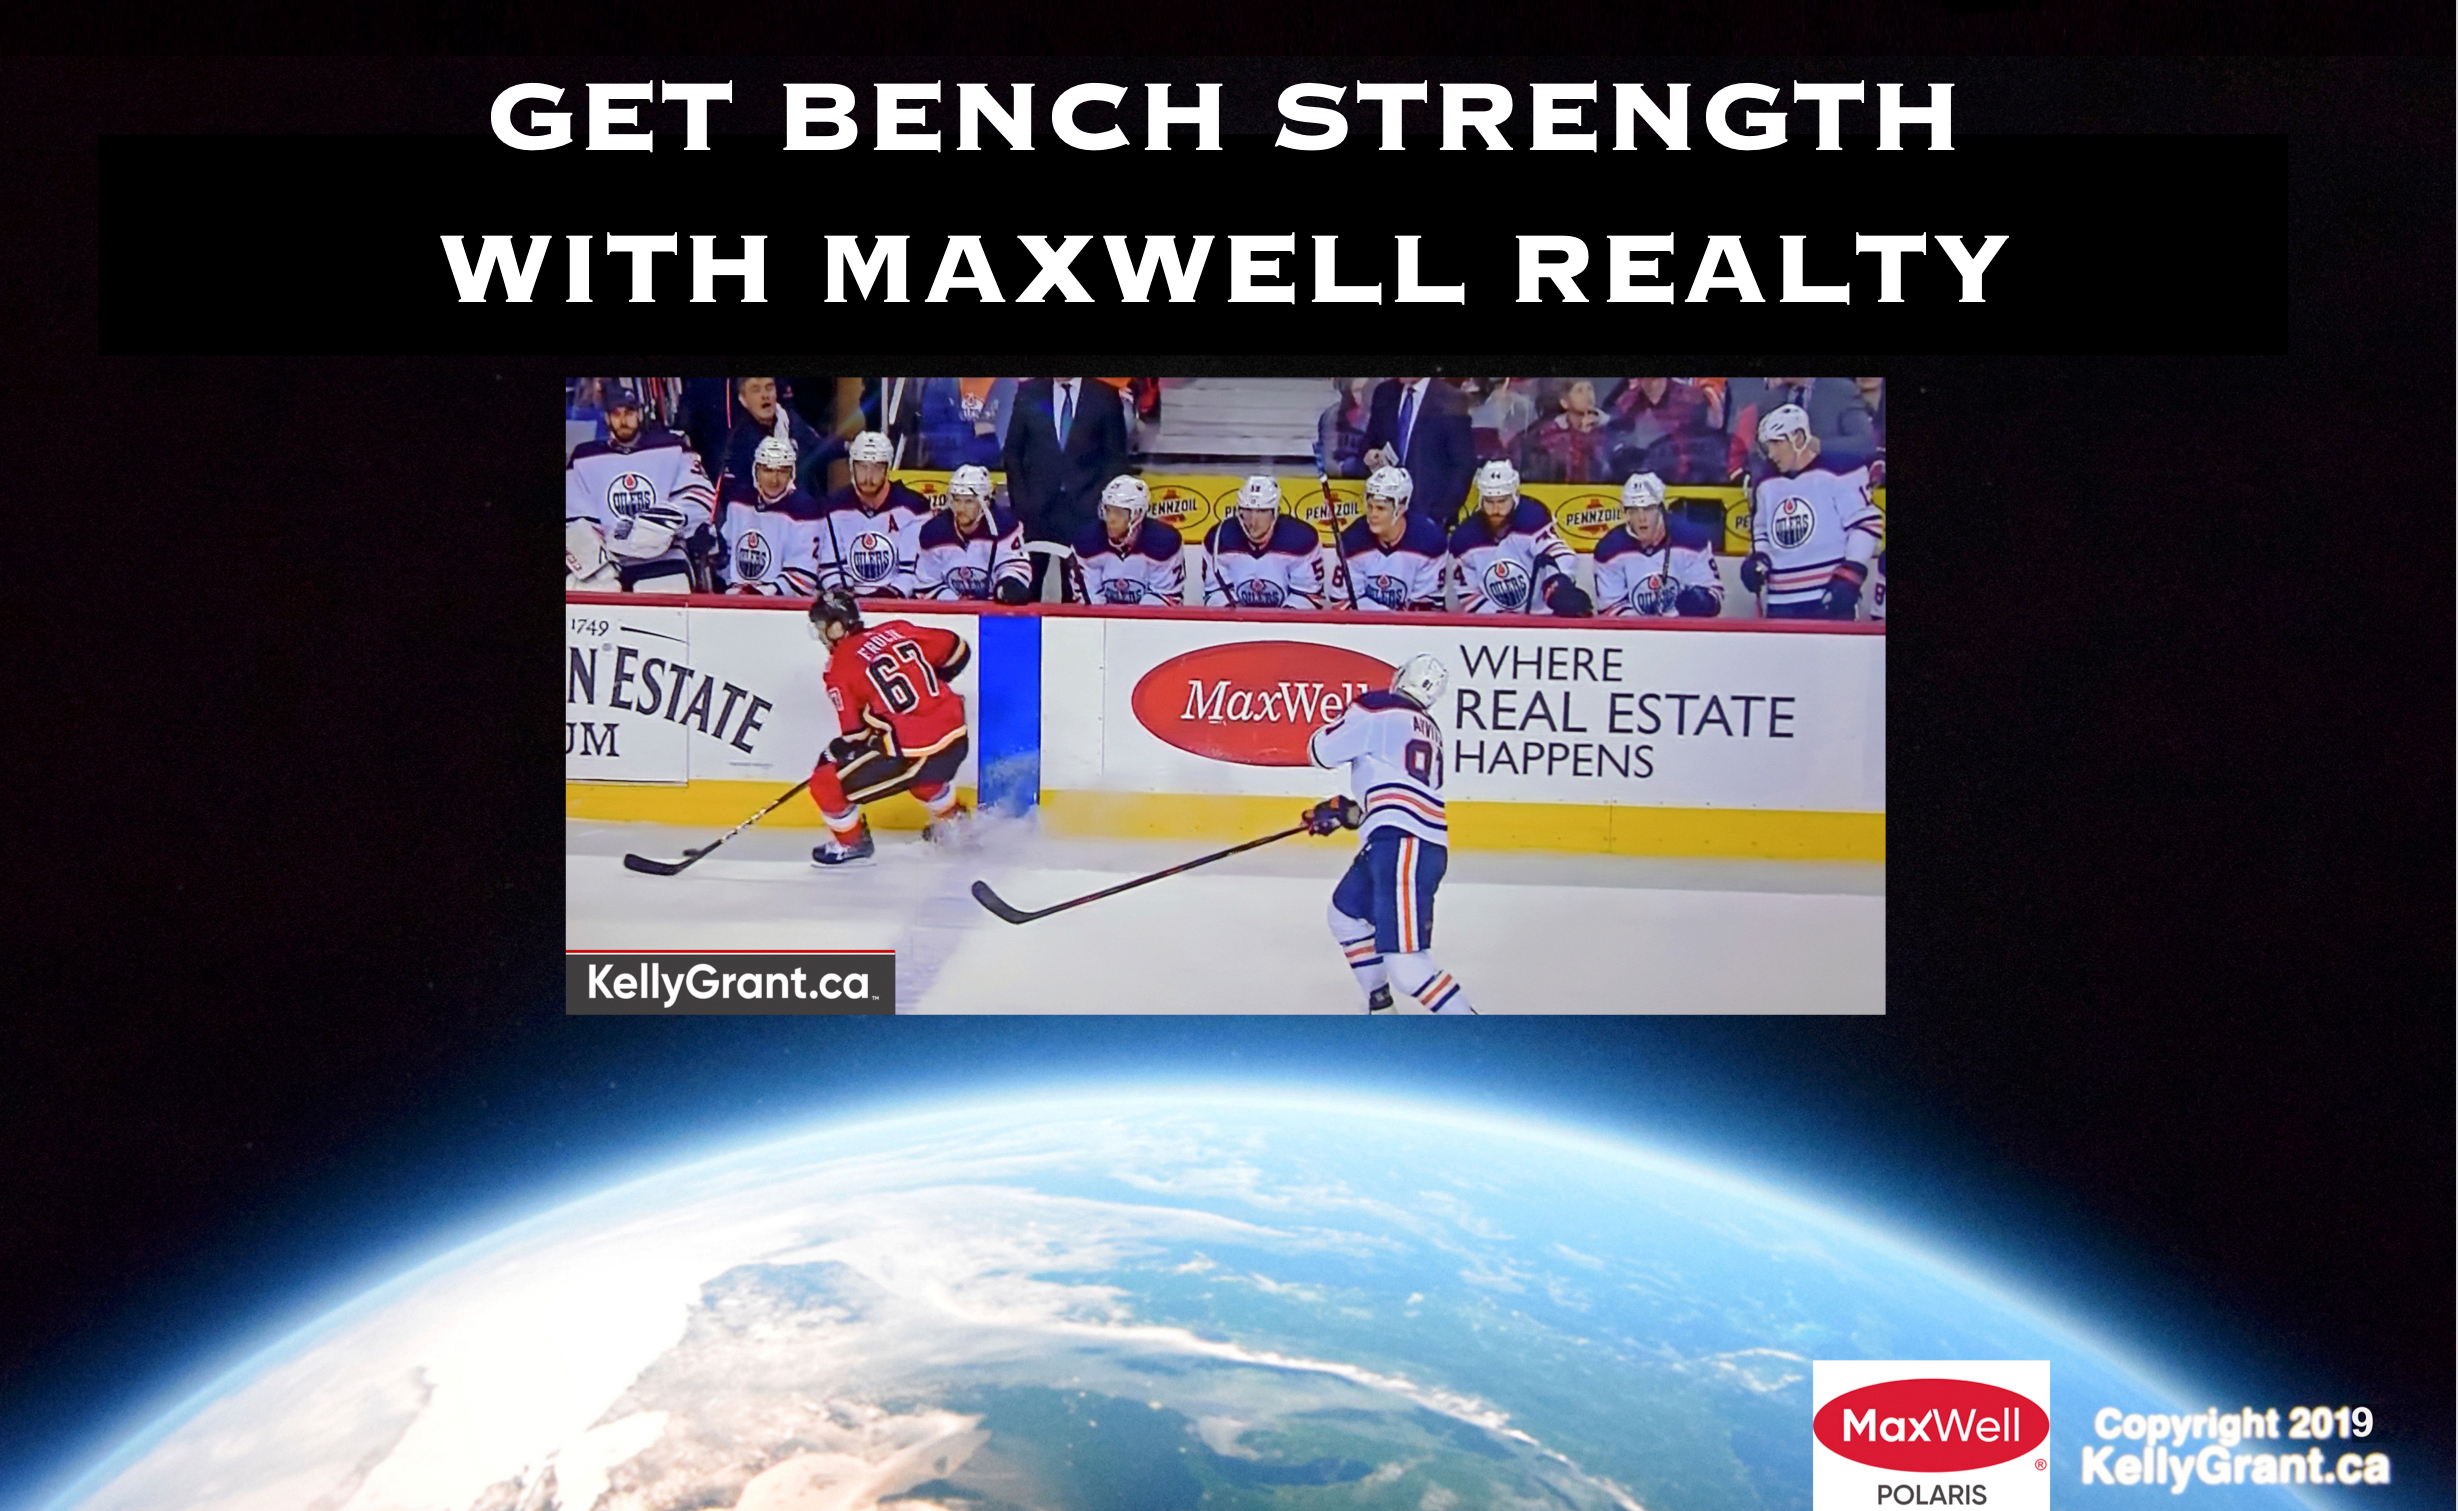 Get Bench Strength with MaxWell Realty